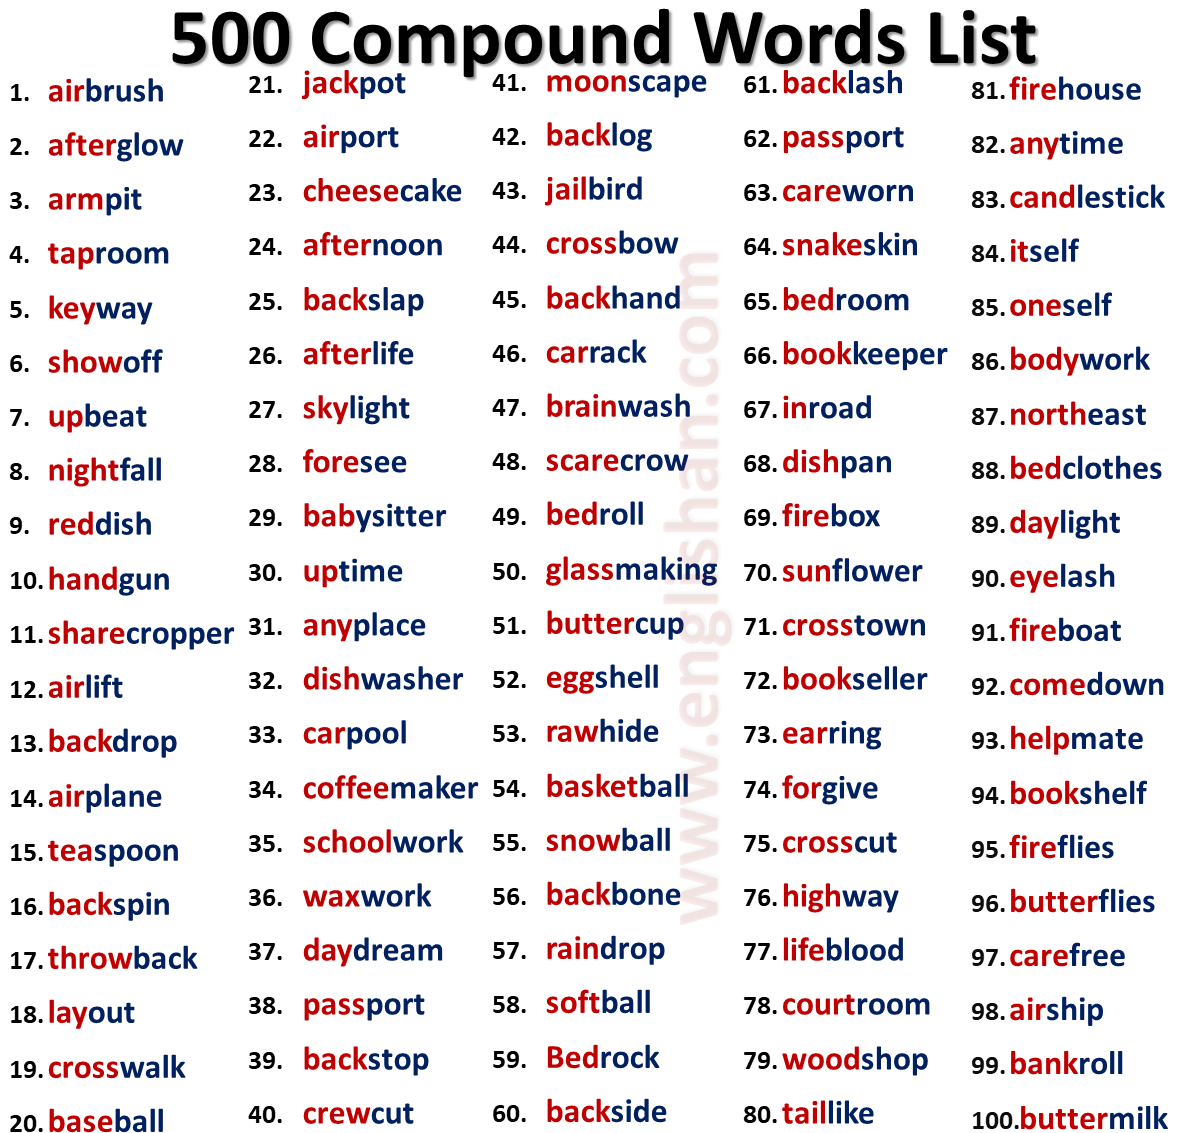 100 Compound Words Examples